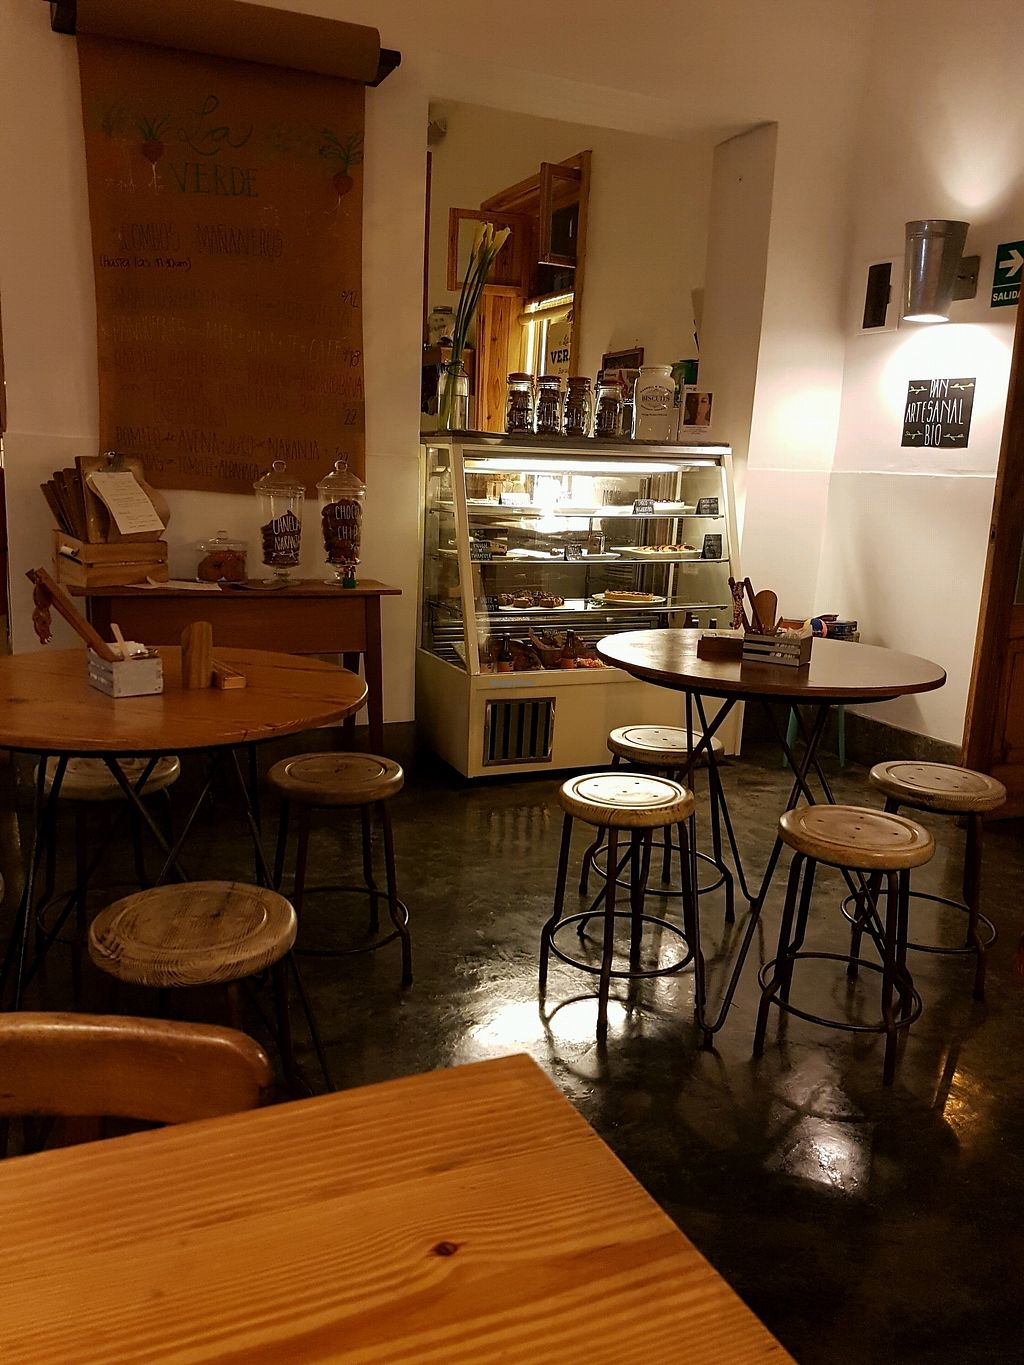 """Photo of La Verde  by <a href=""""/members/profile/Olena"""">Olena</a> <br/>Verde  <br/> April 5, 2018  - <a href='/contact/abuse/image/64792/380940'>Report</a>"""